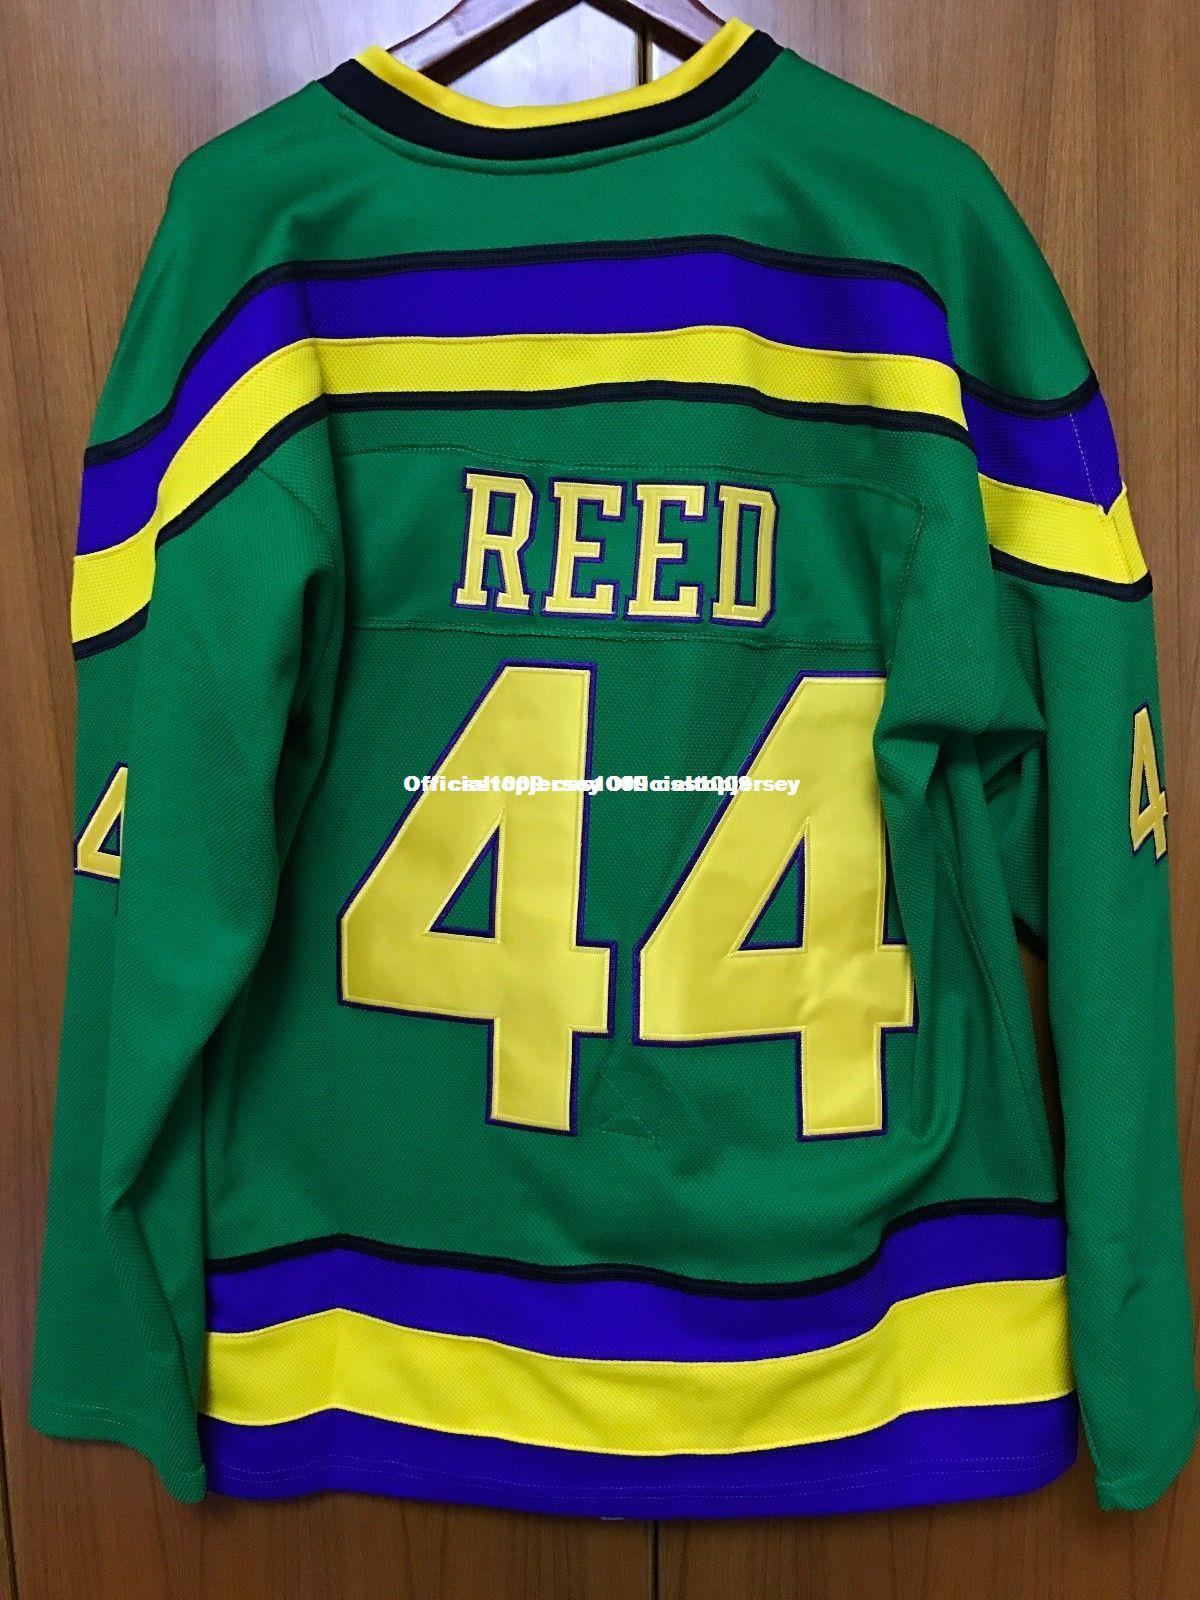 2019 Cheap Custom Mighty Ducks Movie Jersey  44 Fulton Reed Hockey Jersey  Stitched Green Customize Any Number Name MEN WOMEN YOUTH GOALIE CUT 5XL  From ... d67f7690b